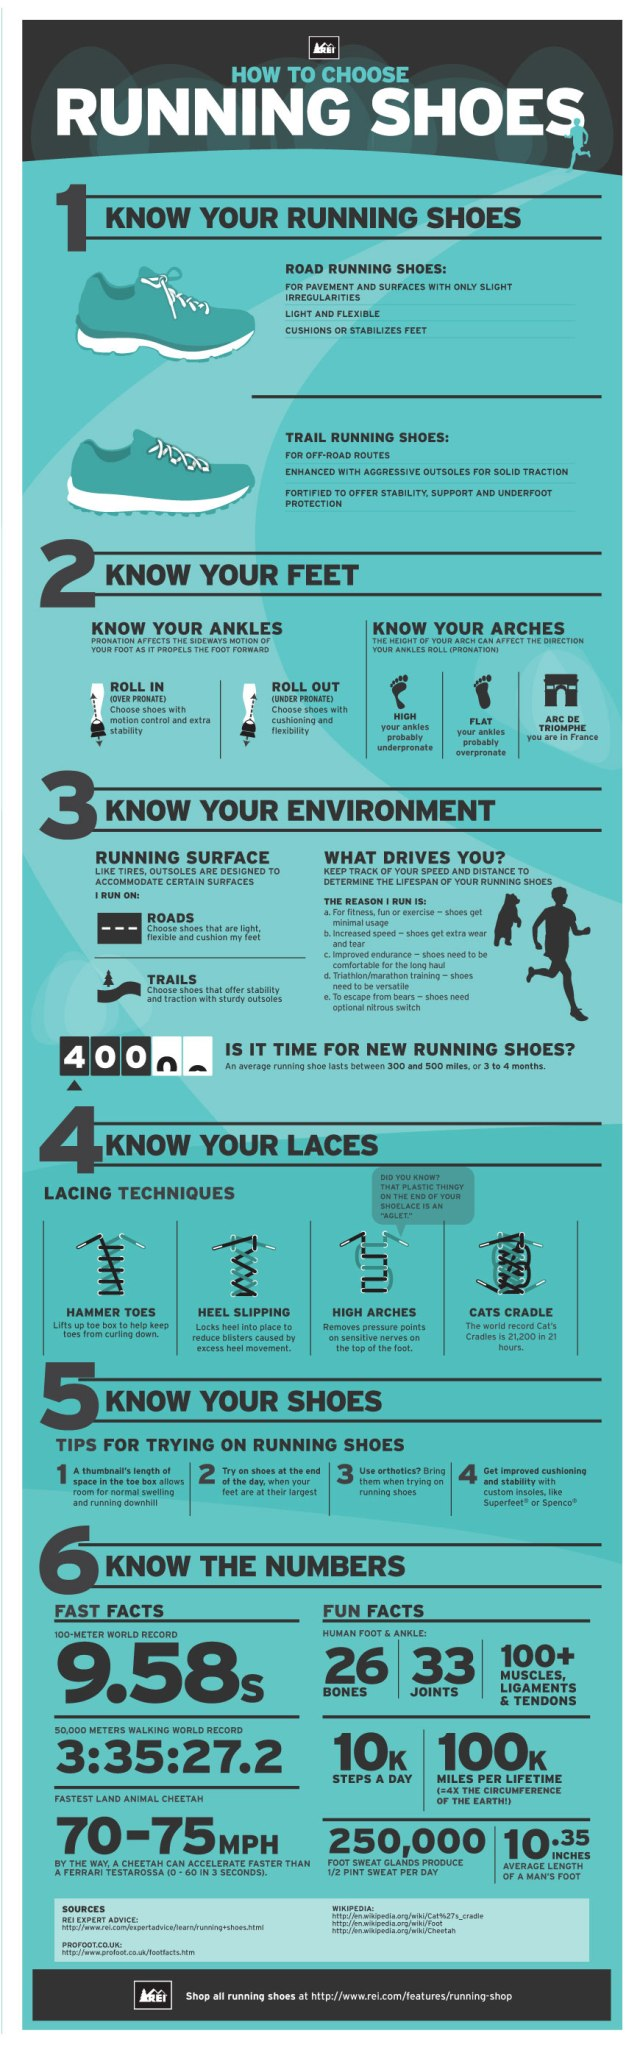 running-shoes-infographic